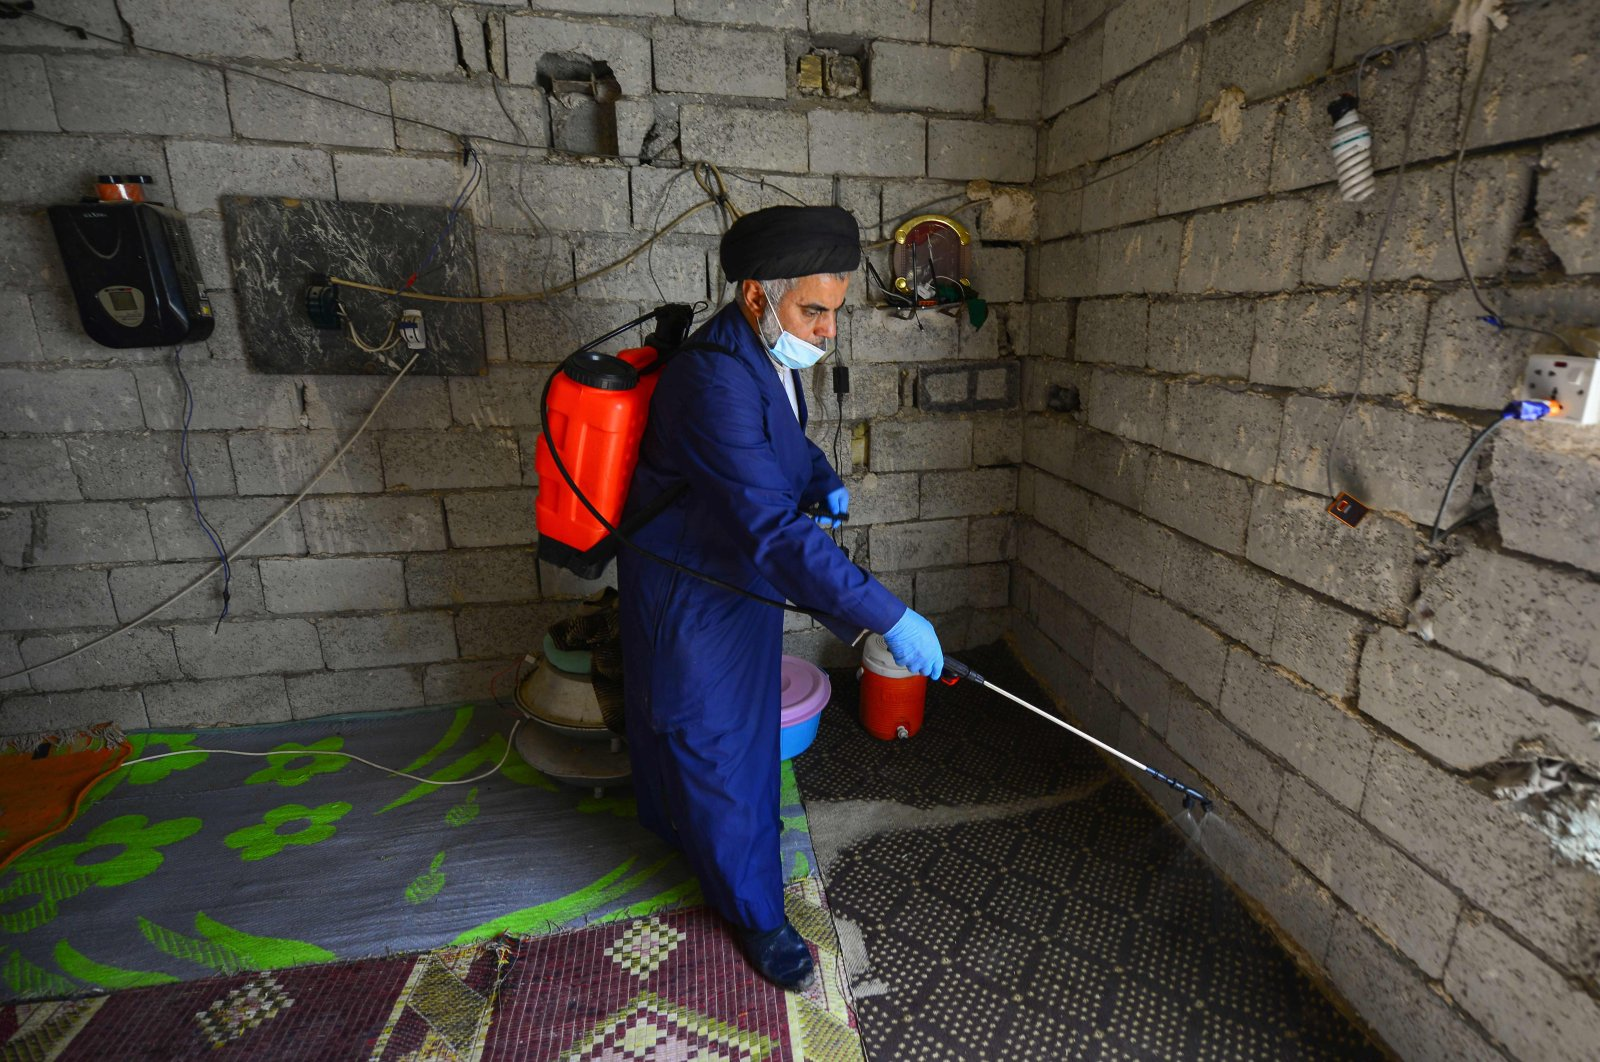 A Shiite cleric disinfects a house in an impoverished neighborhood in the central Iraqi holy city of Najaf on Monday, March 23, 2020, amid the COVID-19 coronavirus pandemic. (AFP File Photo)